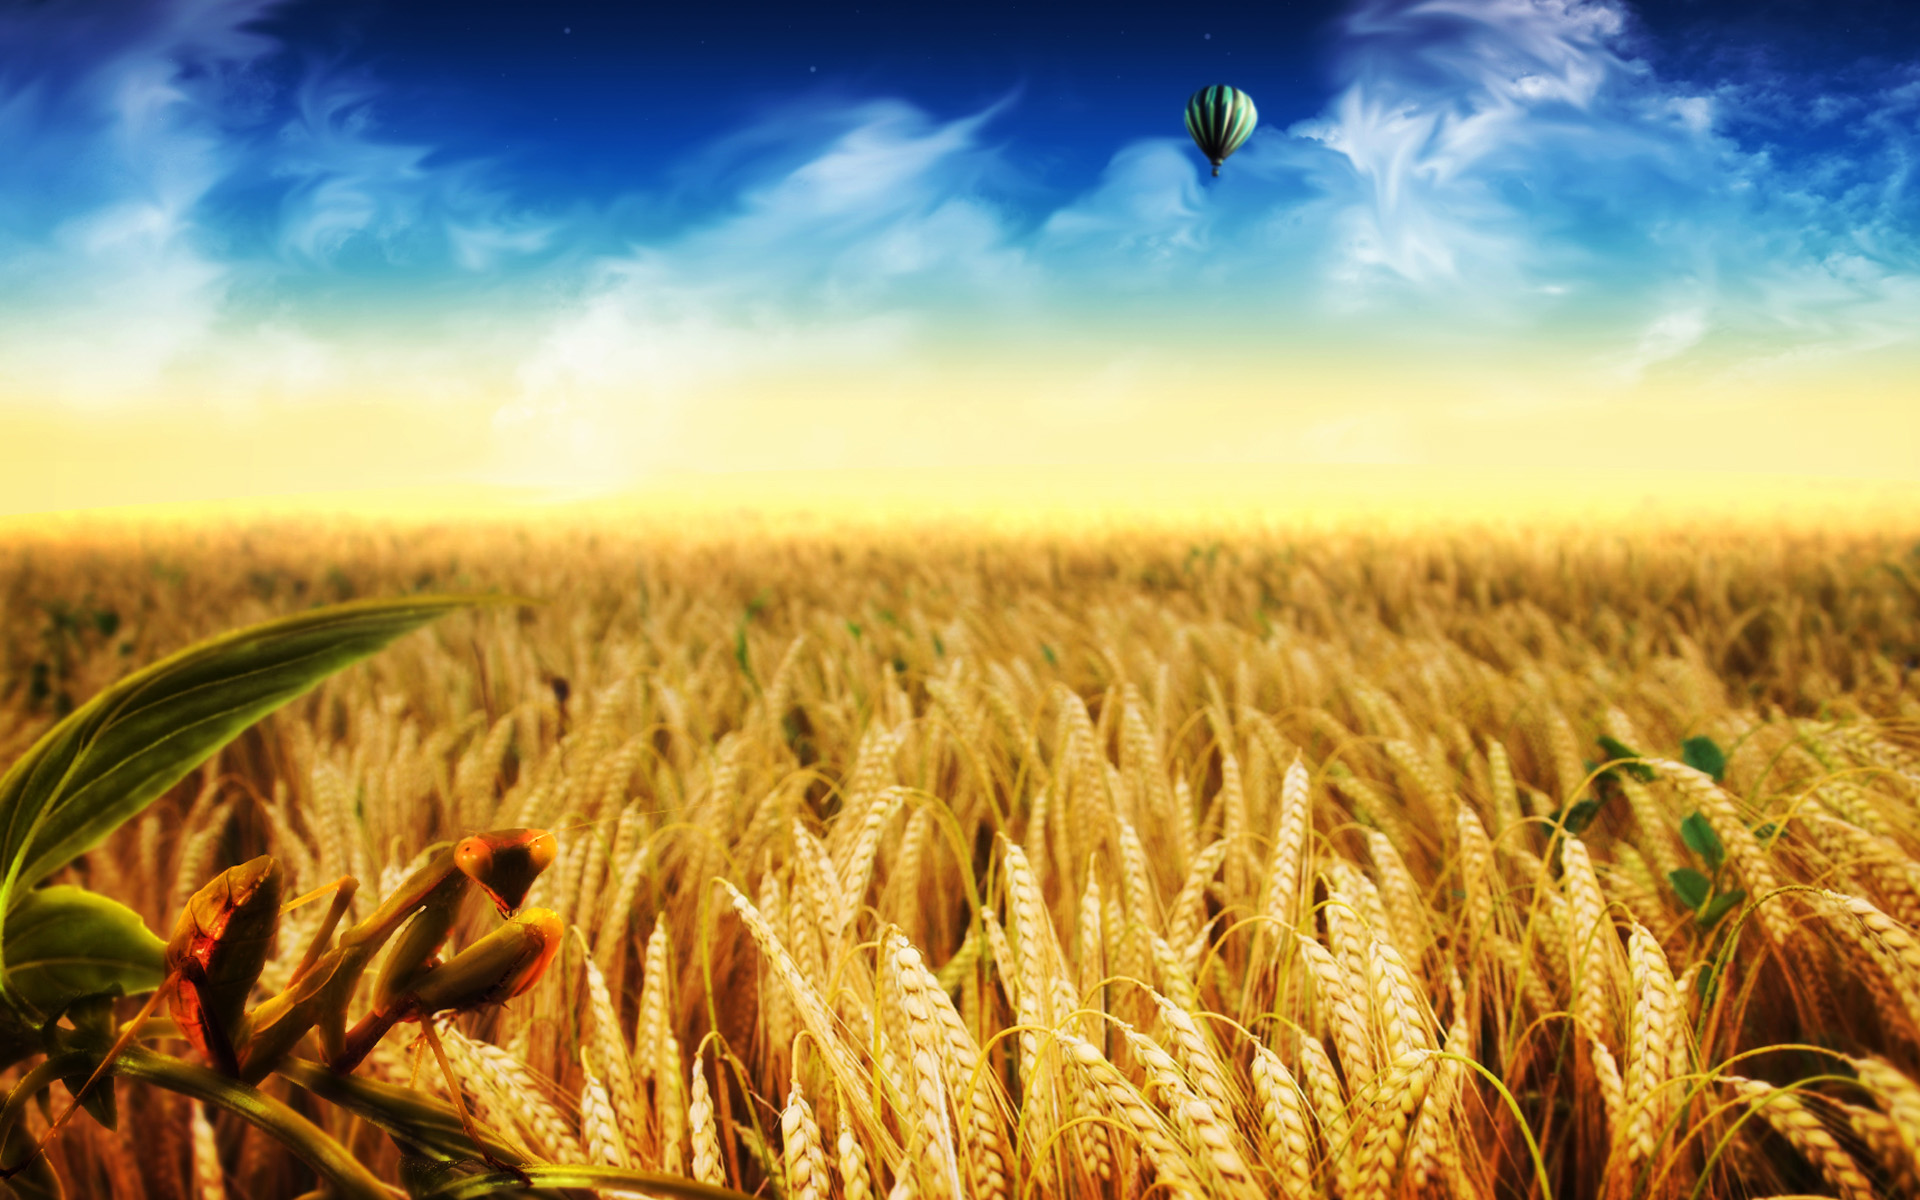 Cornfield Wallpaper